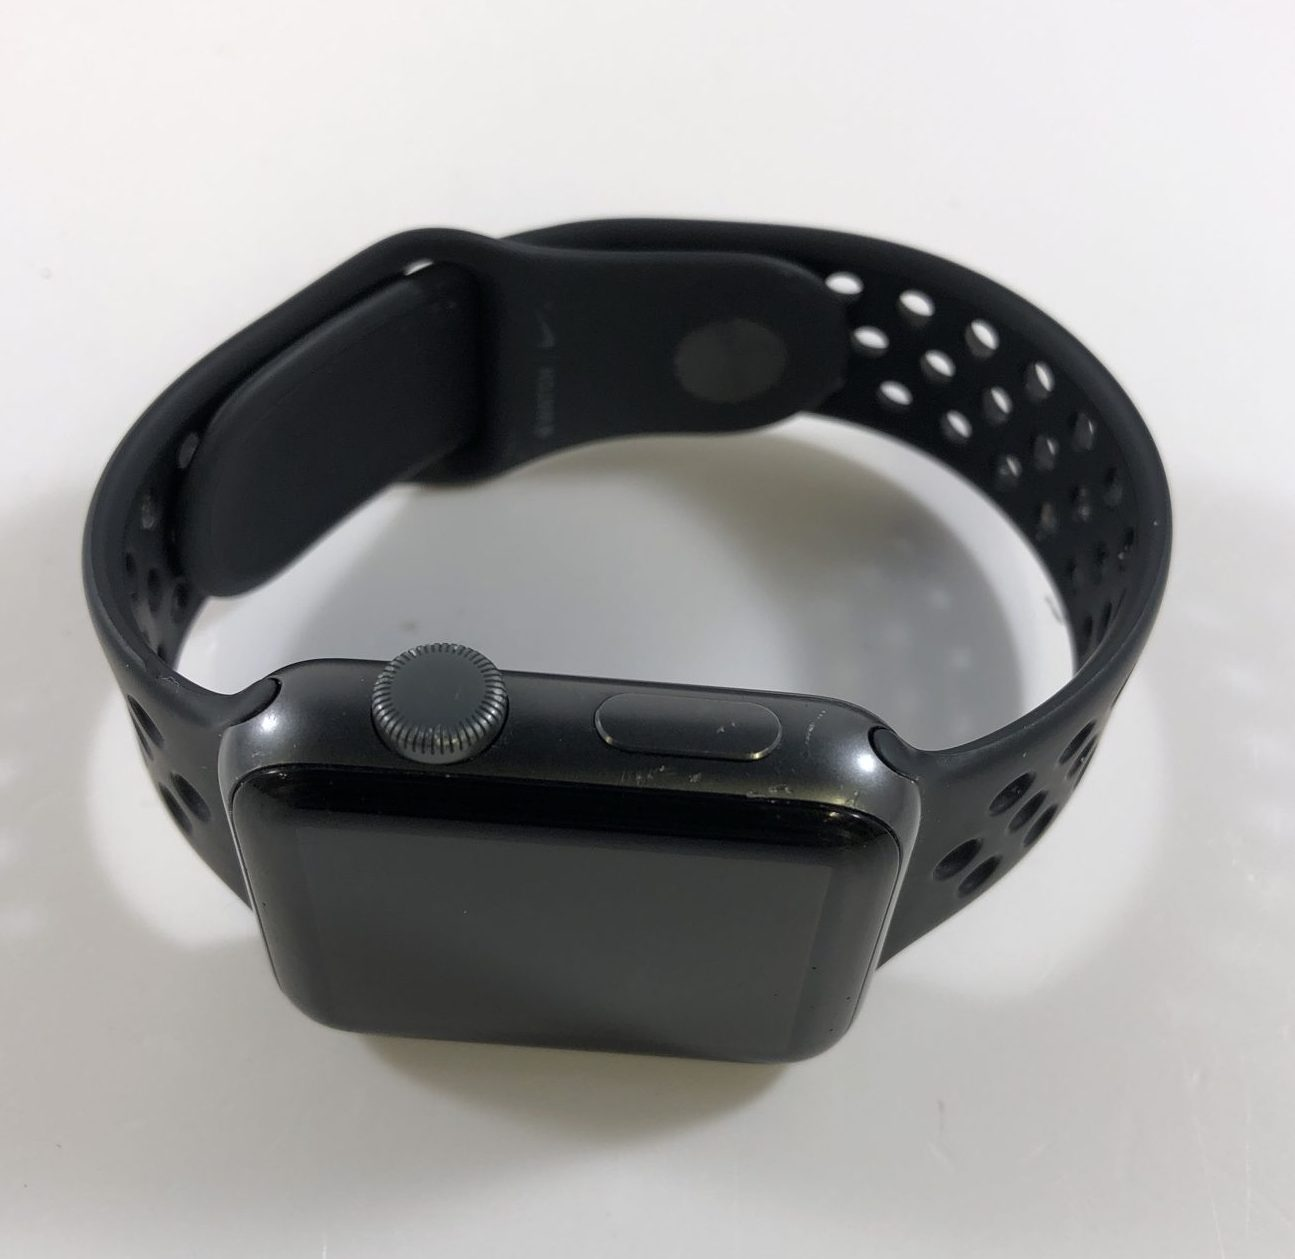 Watch Series 3 Aluminum (42mm), Space Gray, Anthracite/Black Nike Sport Band, Kuva 2